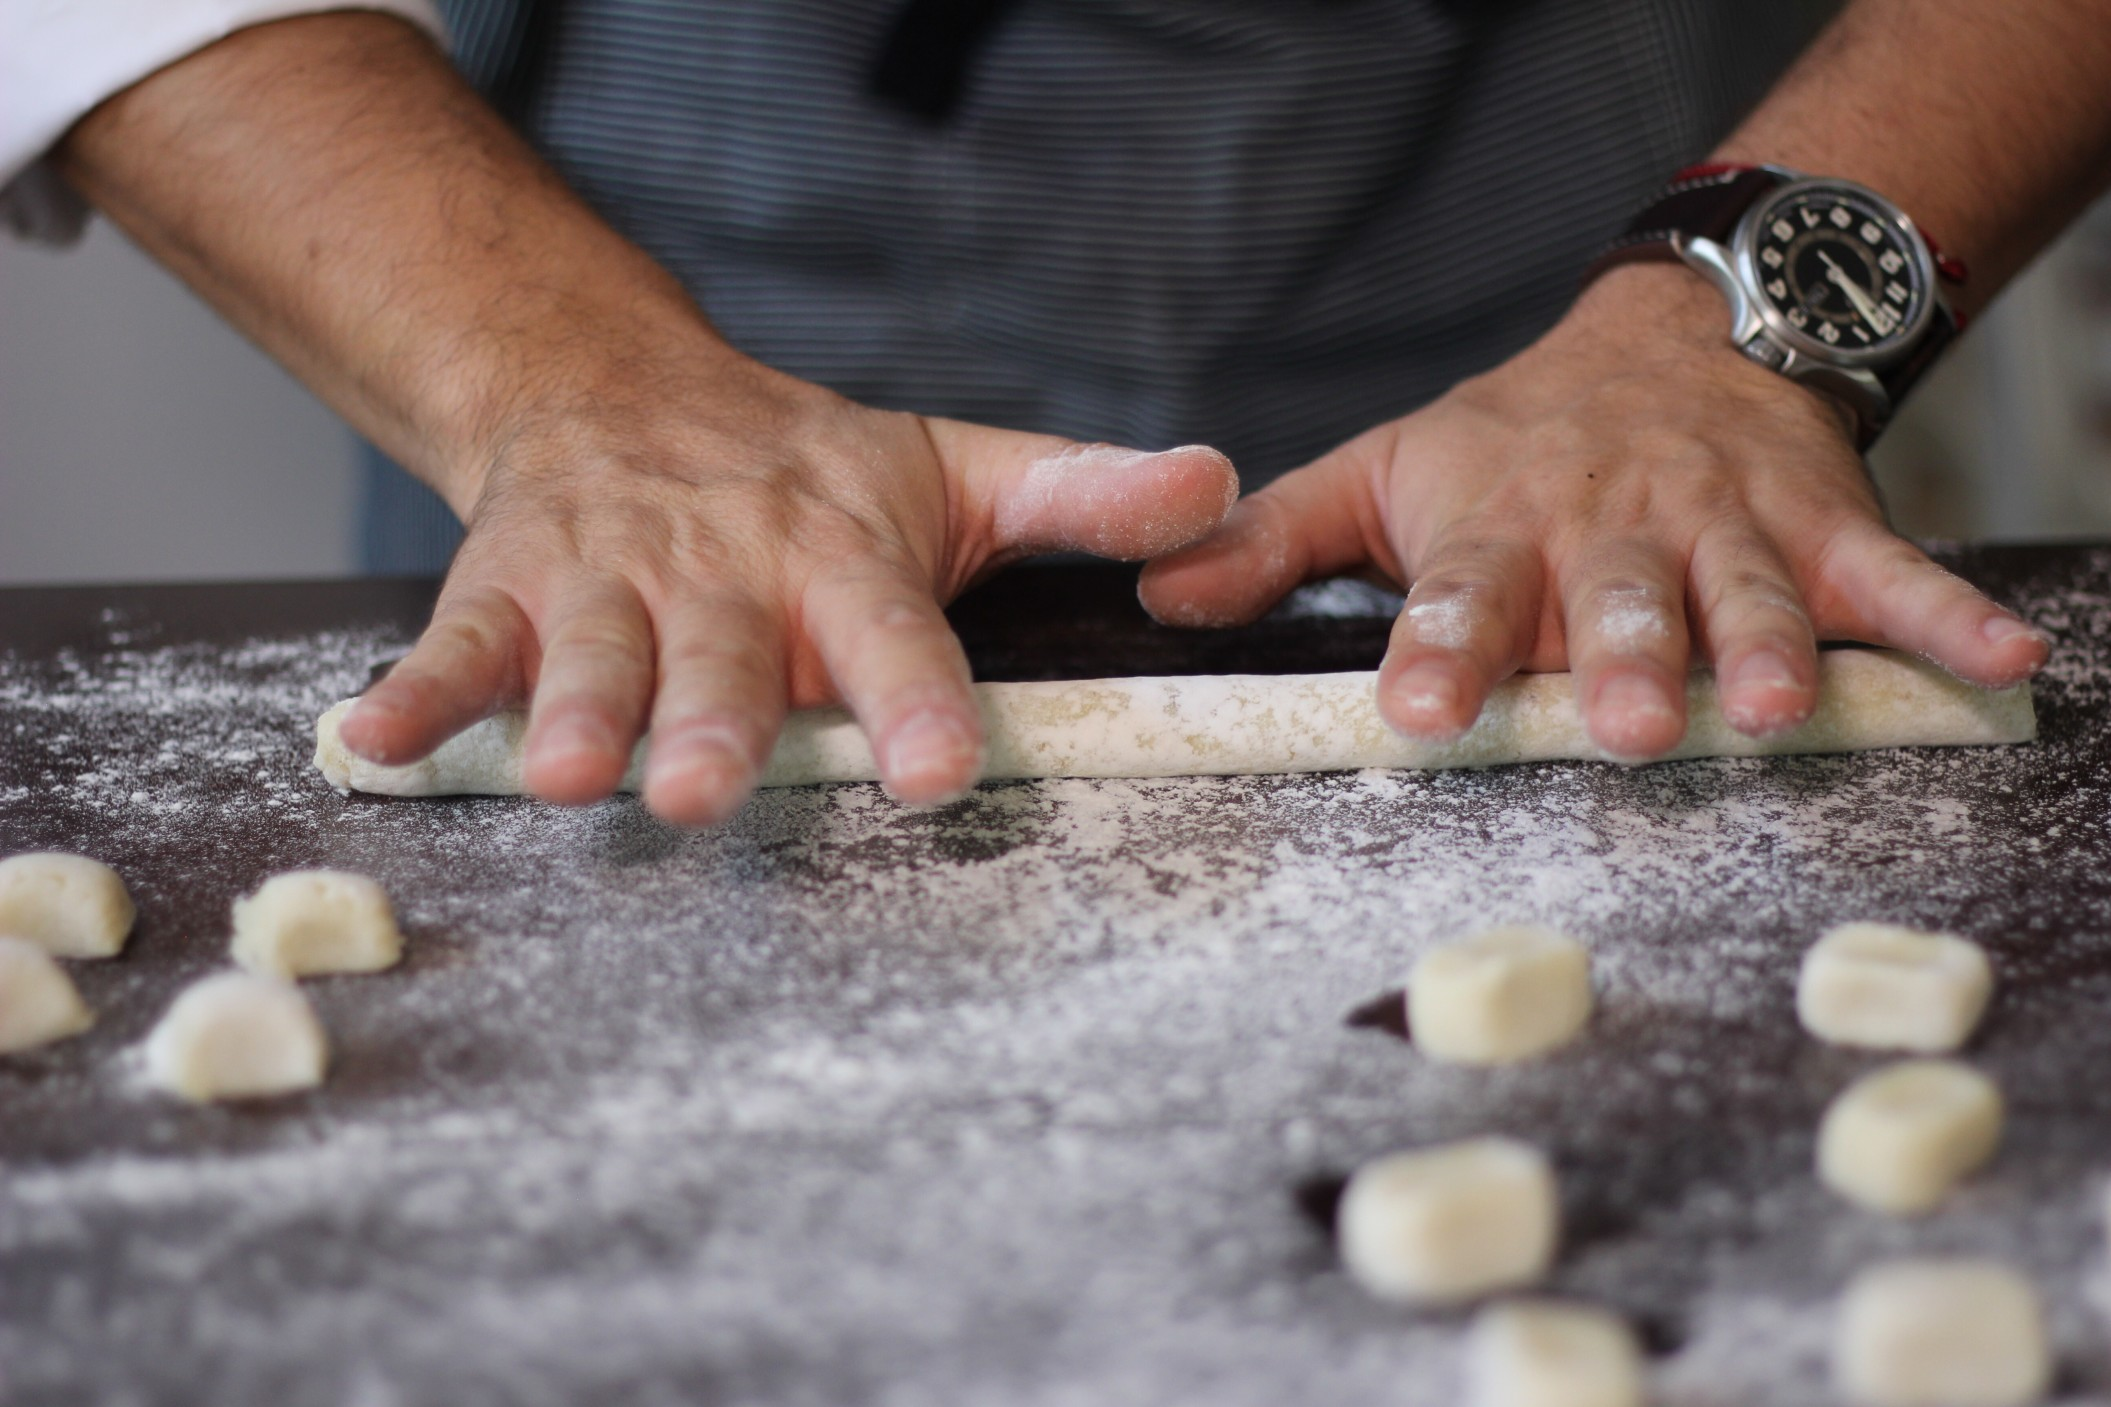 Making Gnocchi at Home Is Easier than You Might Think